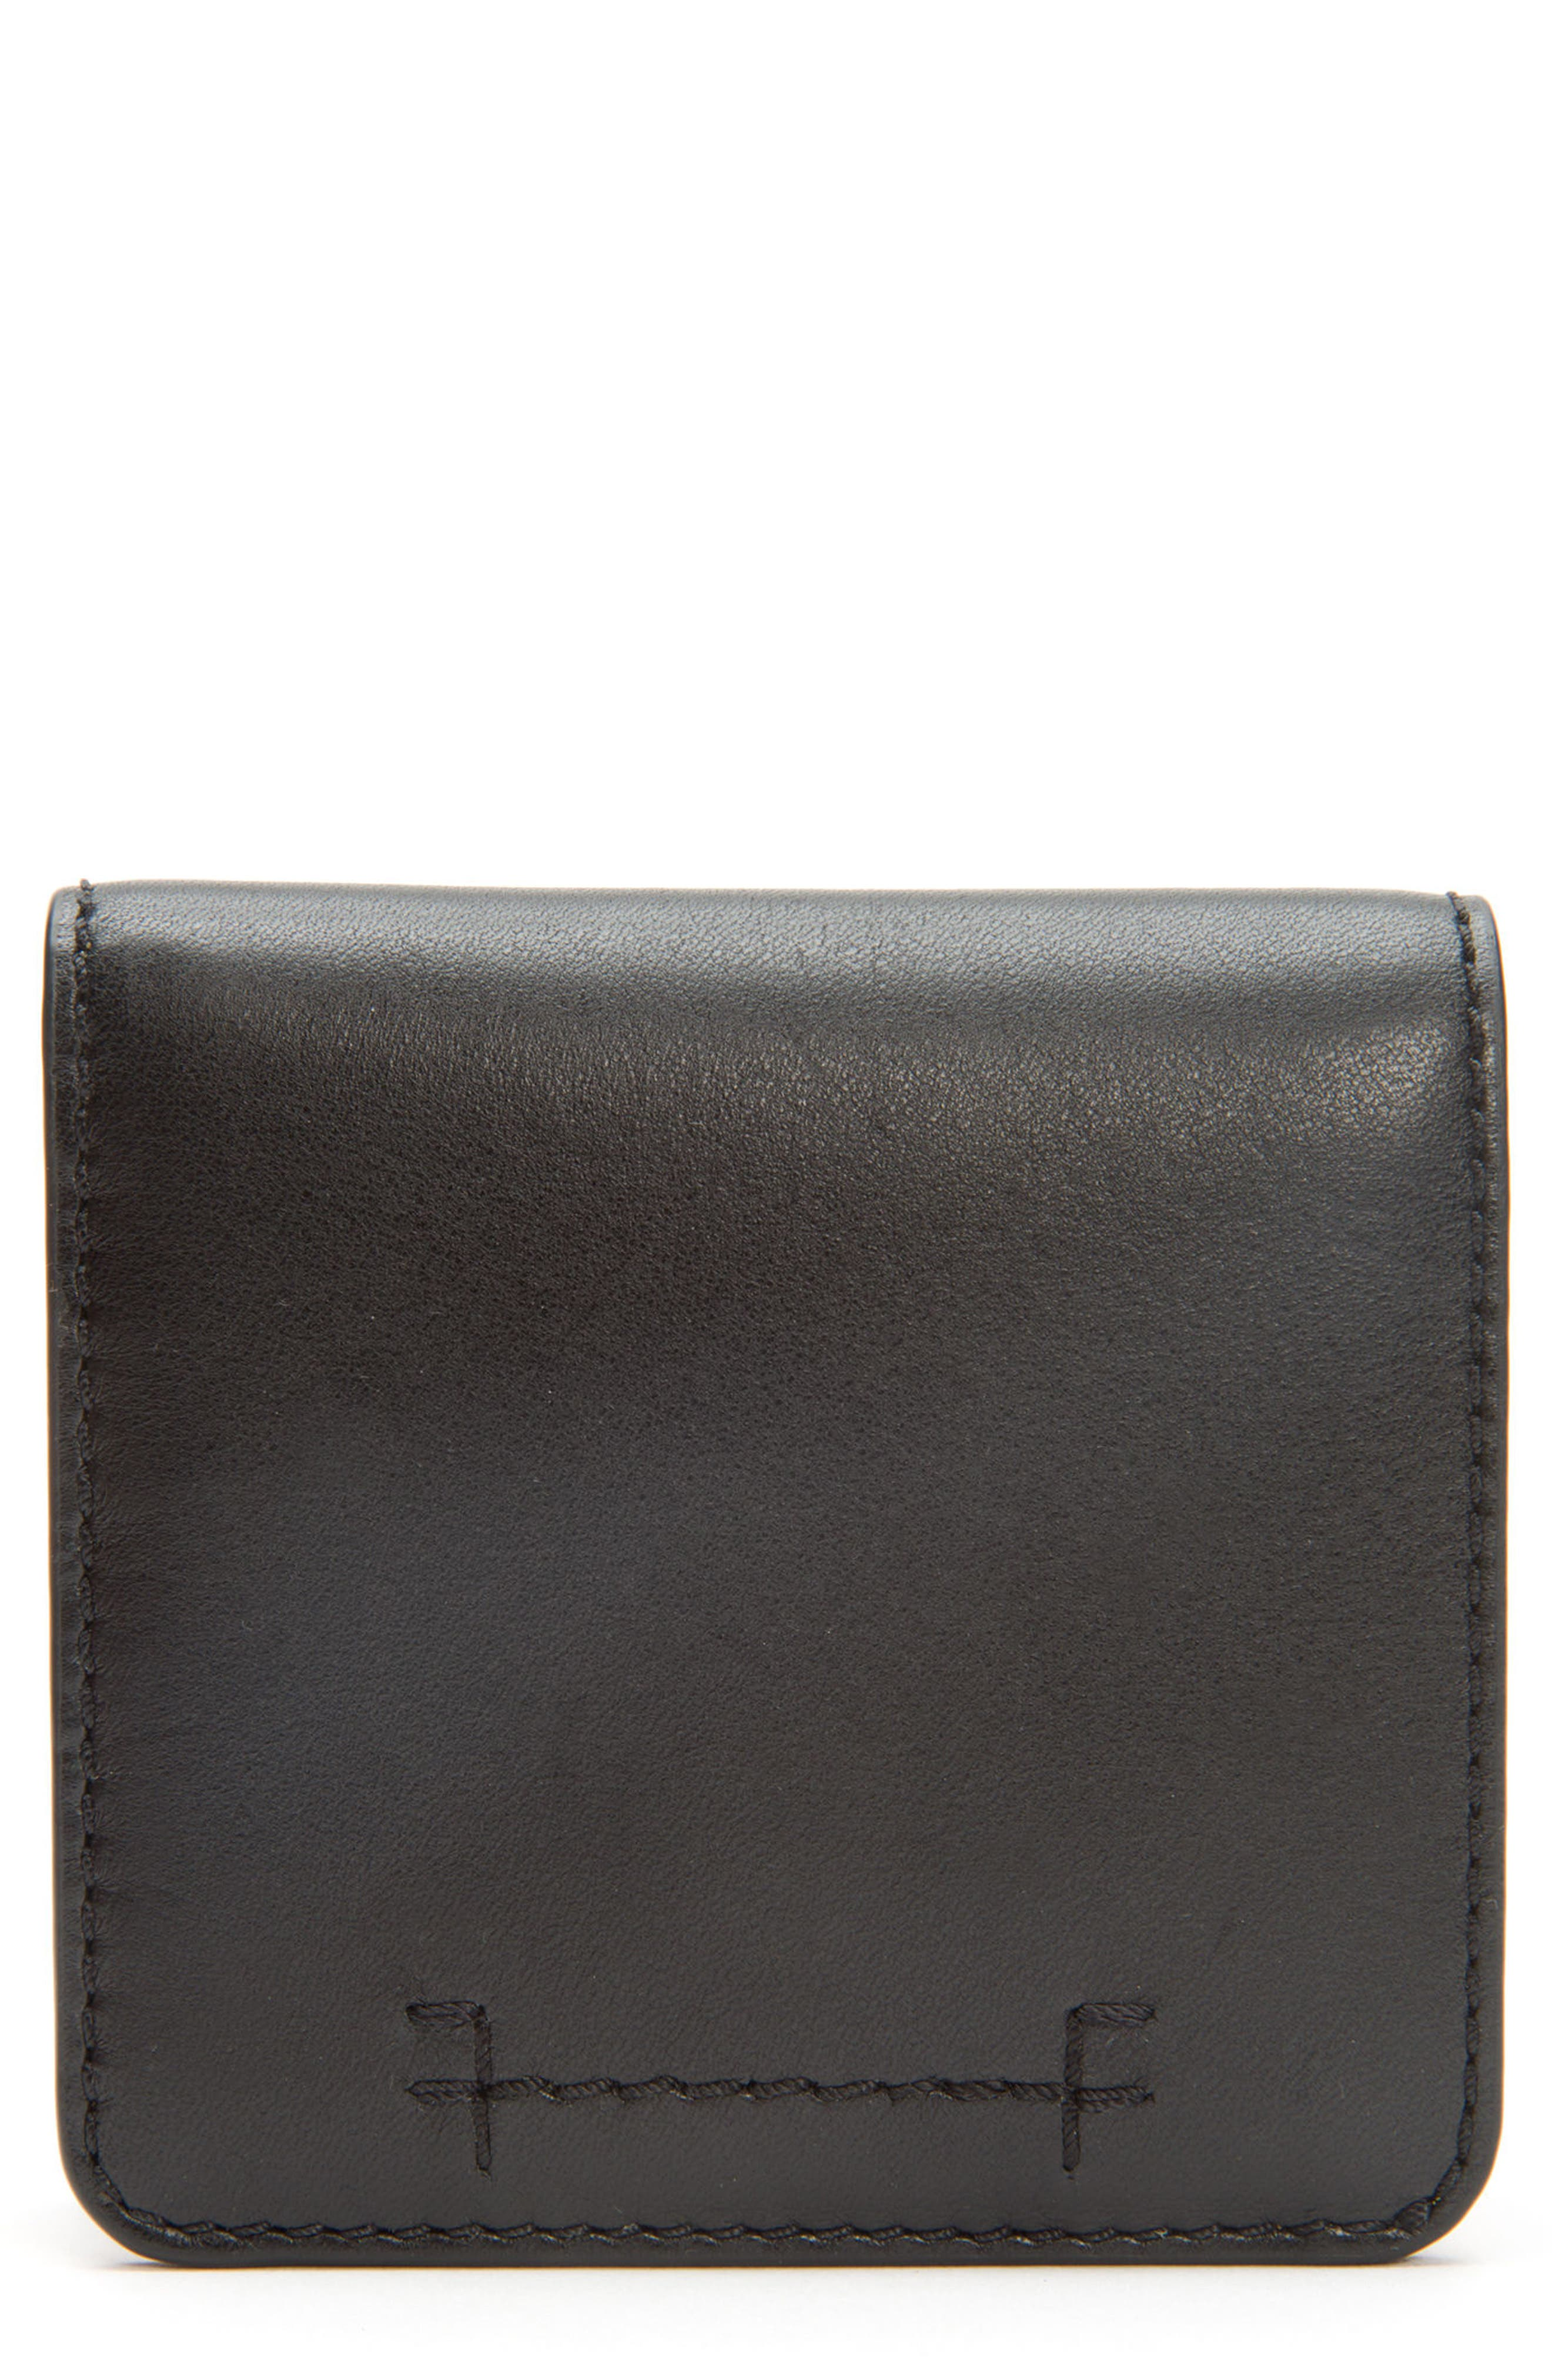 Carson Small Leather Wallet,                             Main thumbnail 1, color,                             001